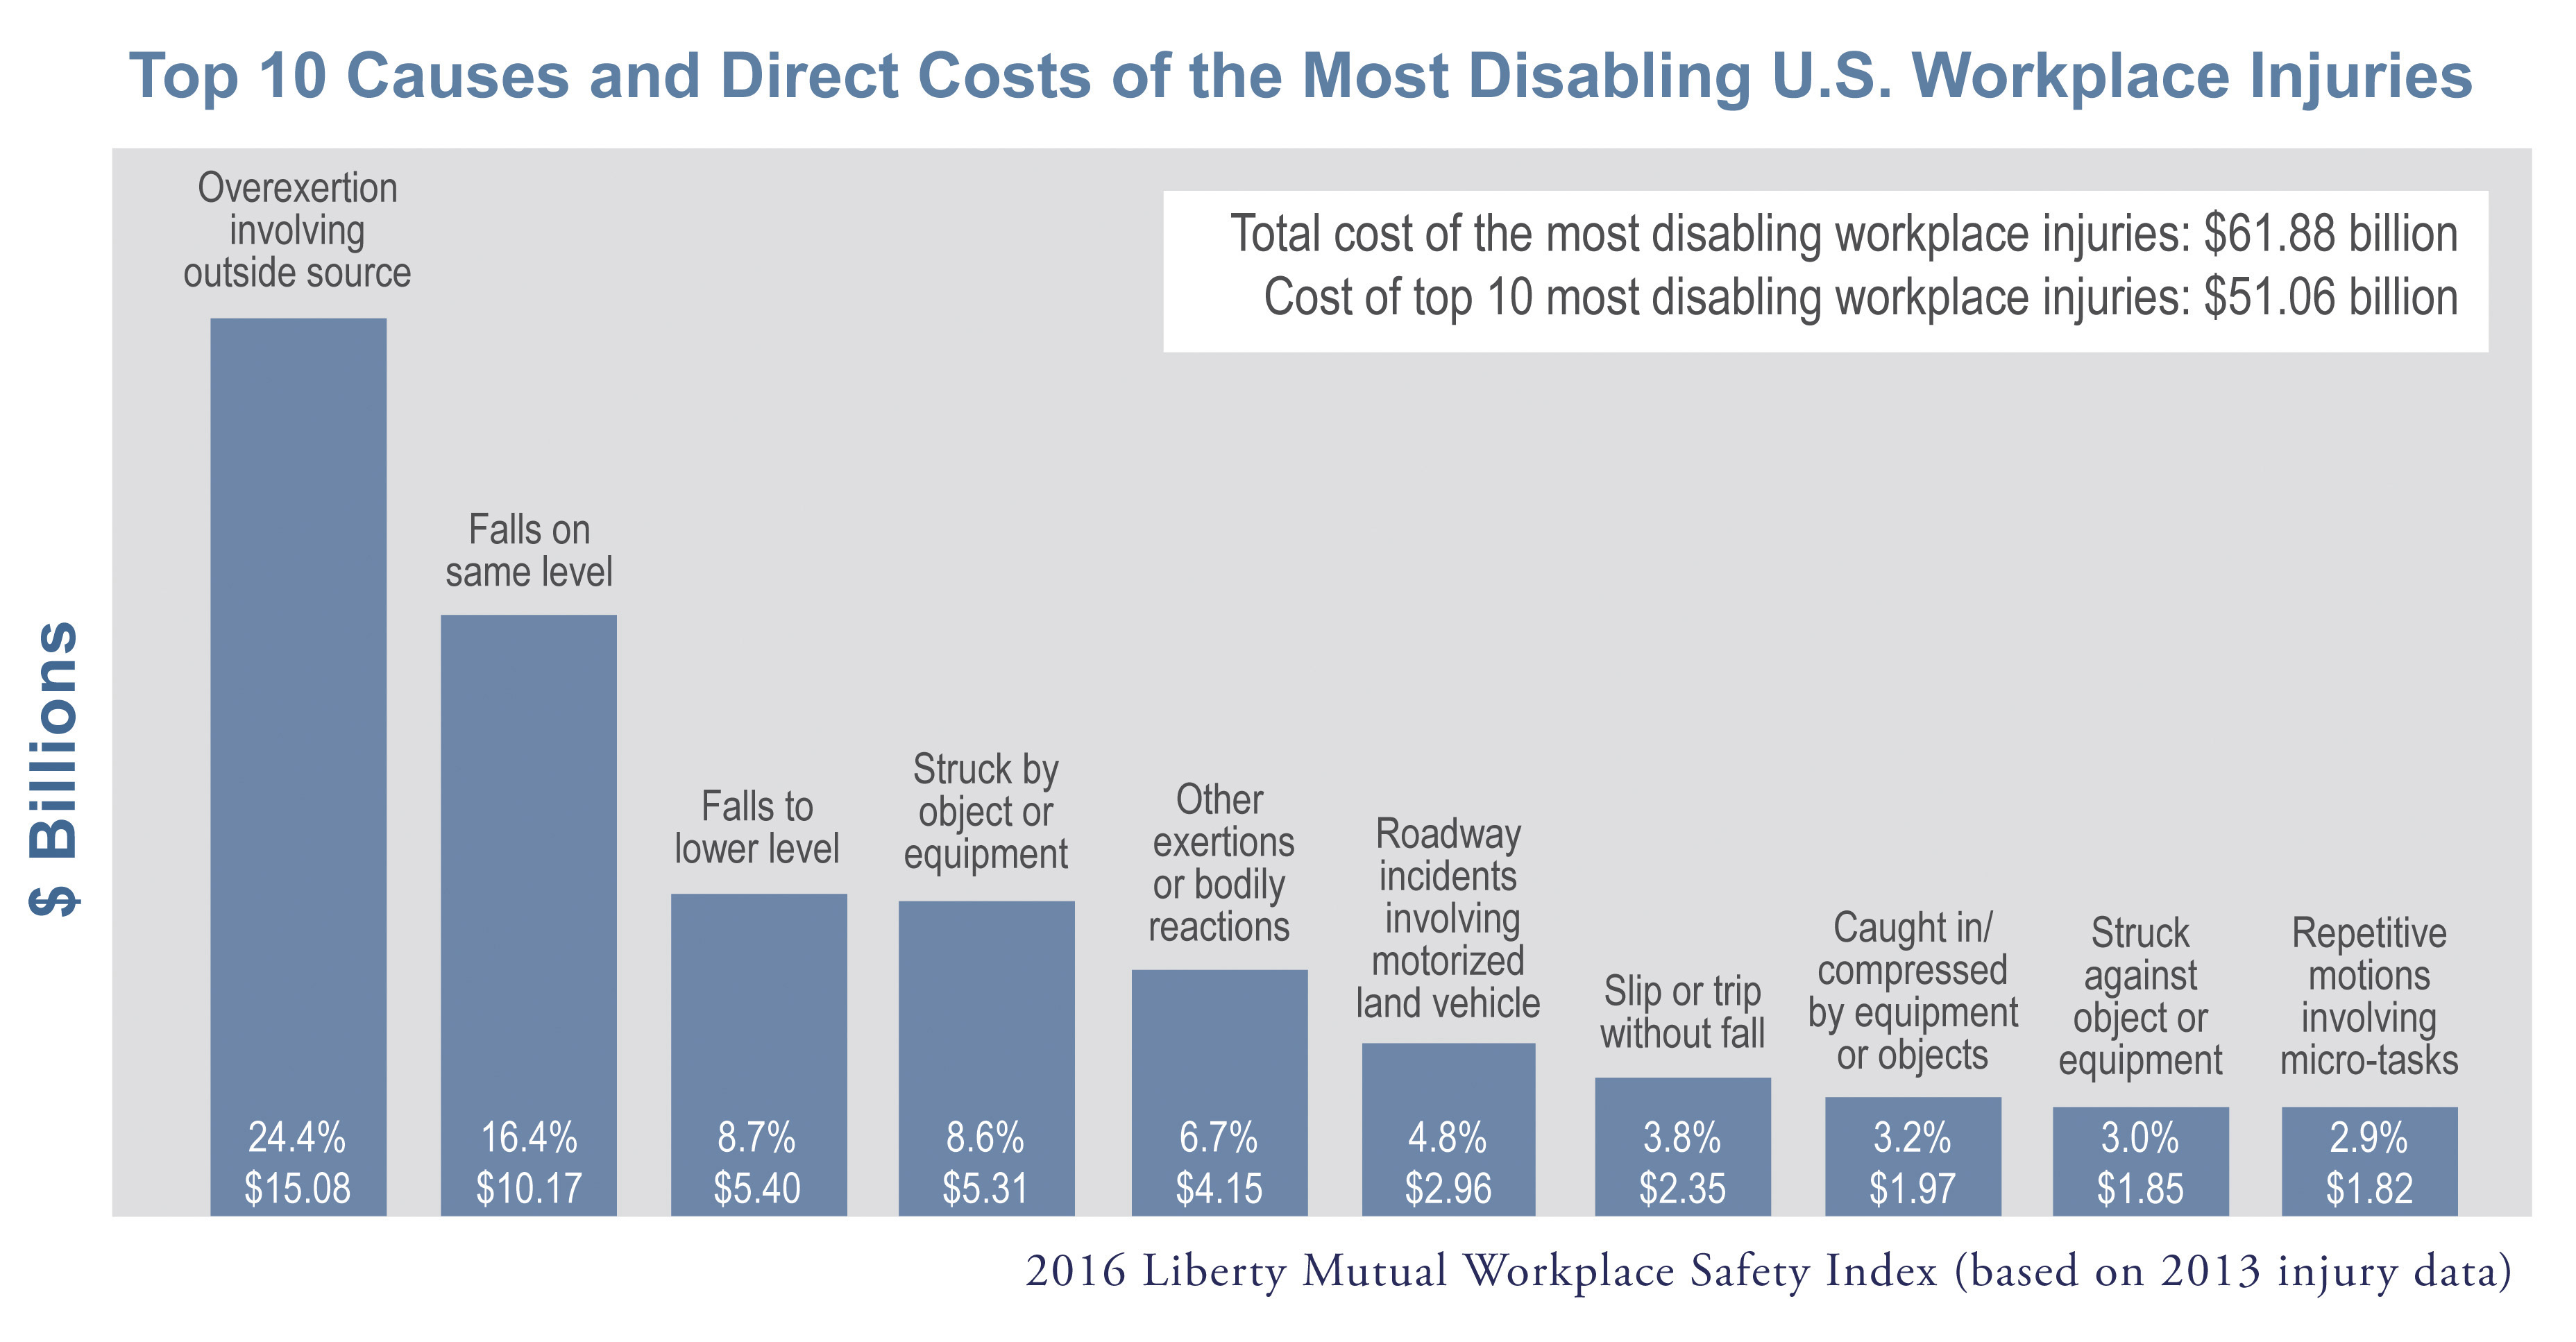 Top-10-causes-&-direct-costs-US-workplace-injuries-from-Liberty-Mutual